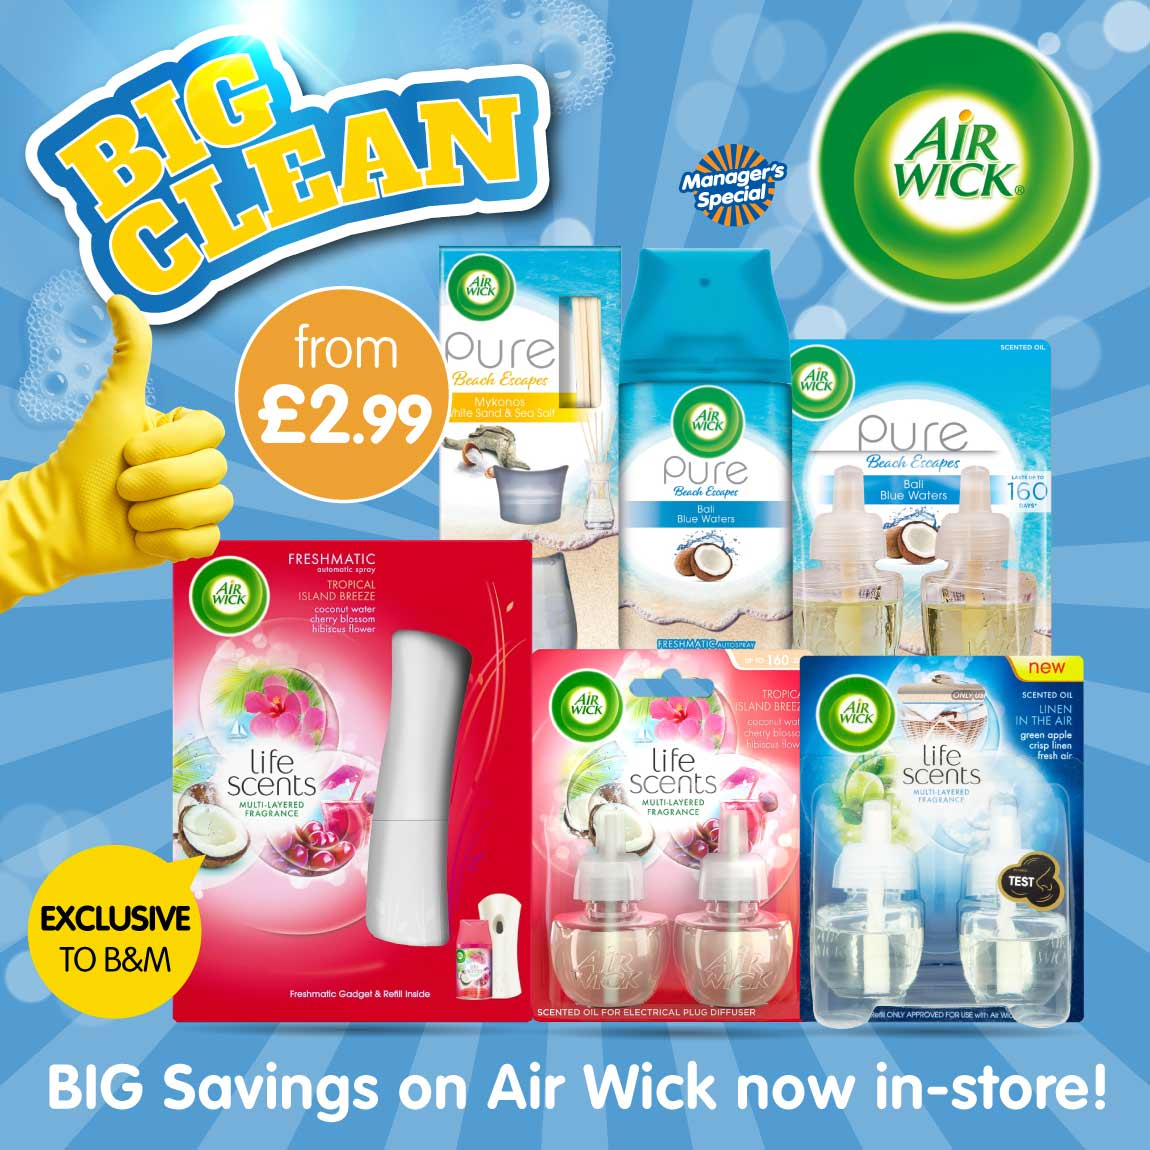 Save on Air Wick in the Big Clean at B&M.